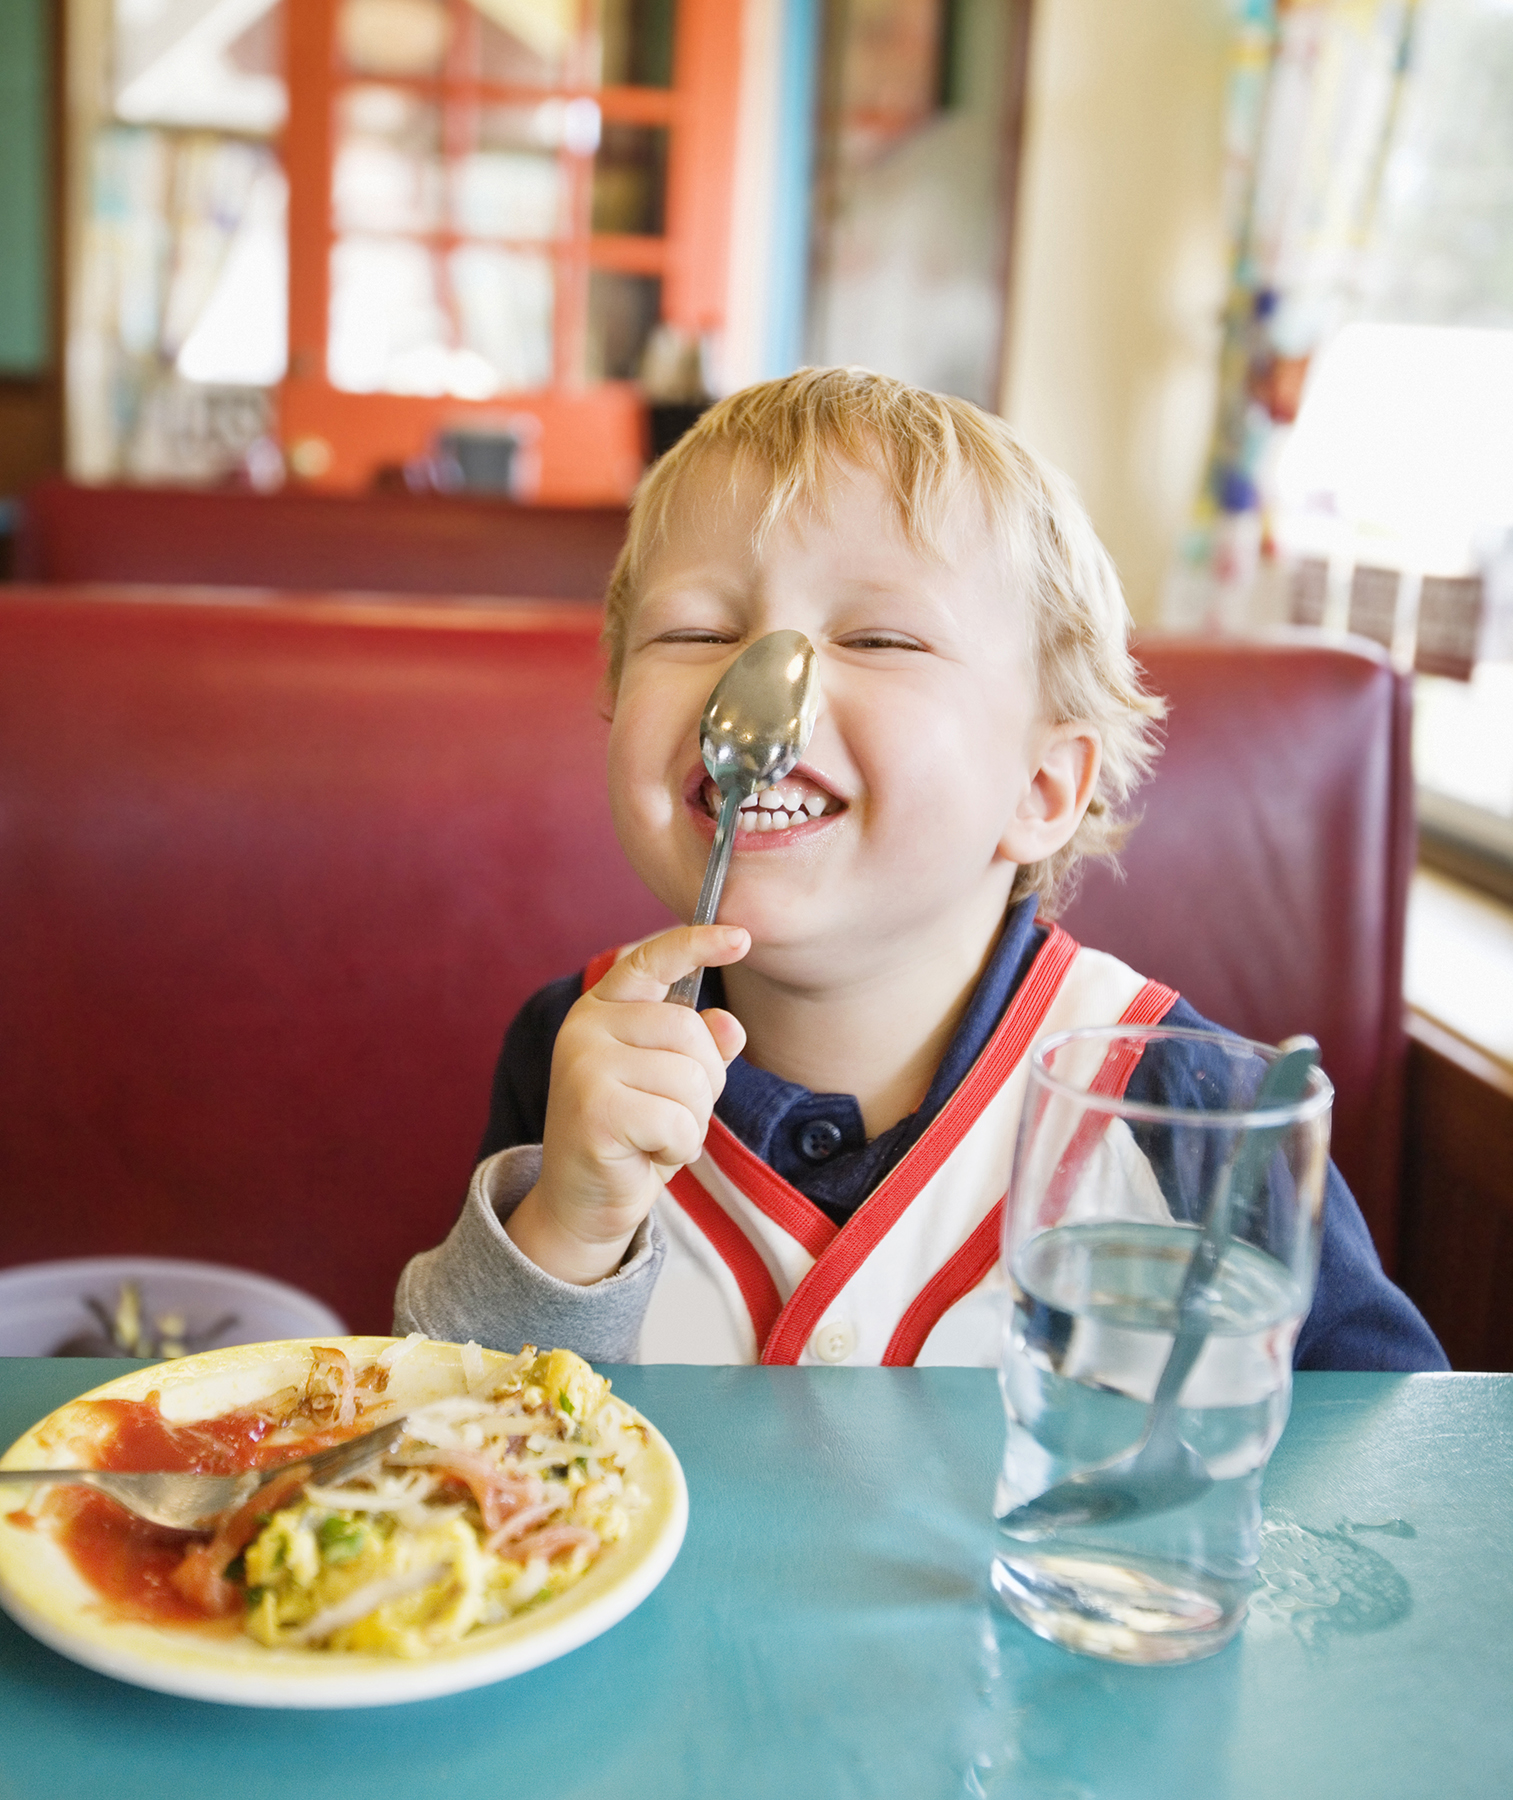 Toddler with spoon on his nose at restaurant